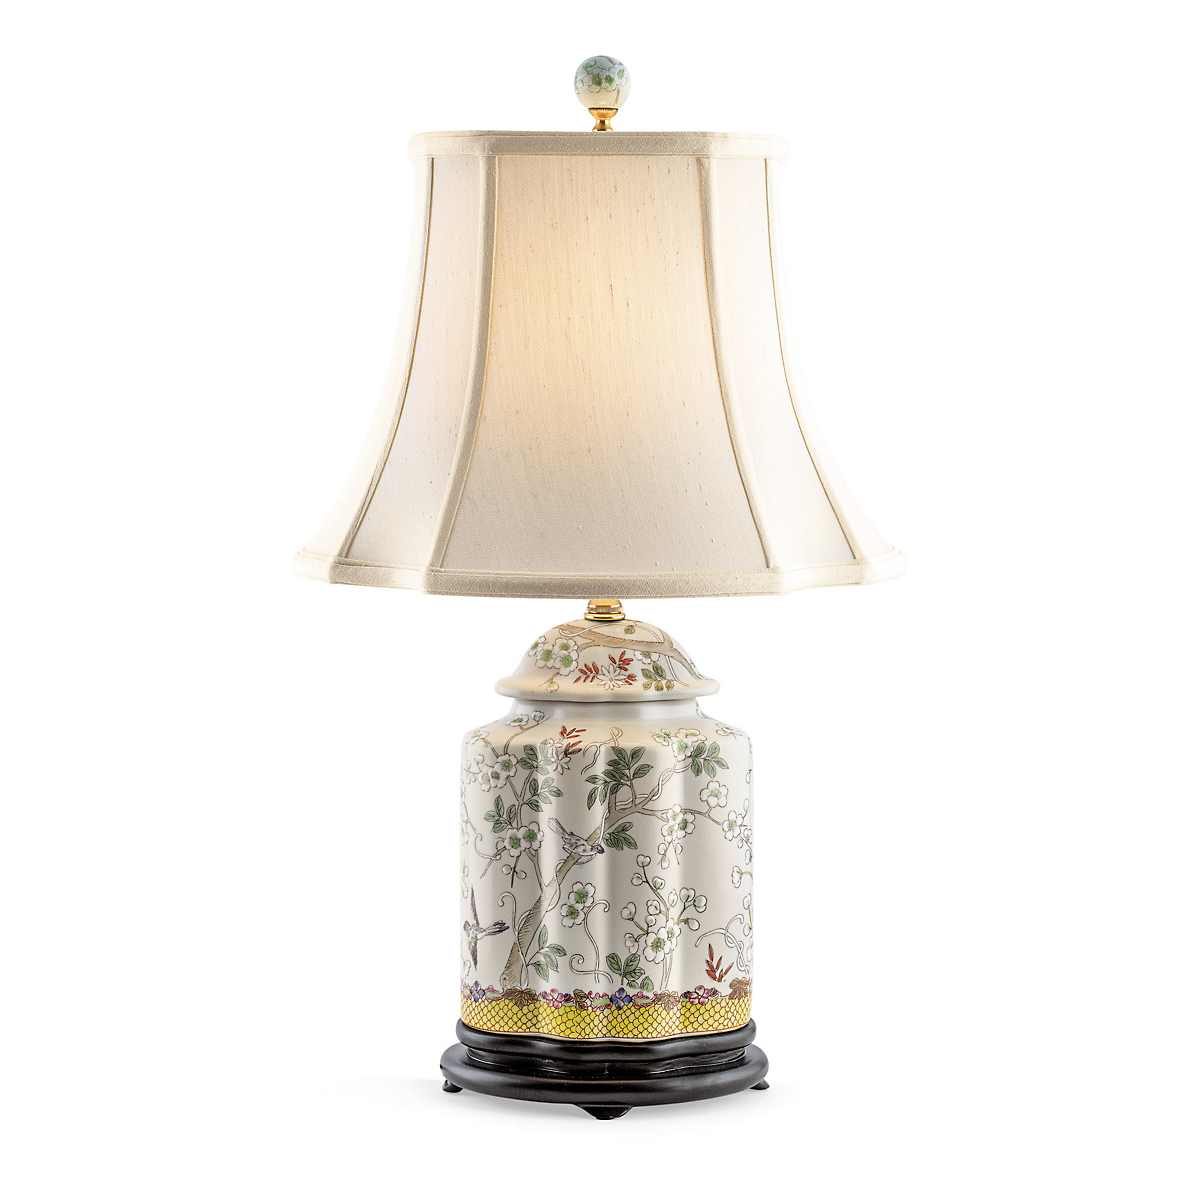 Jardins Tea Jar Lamp